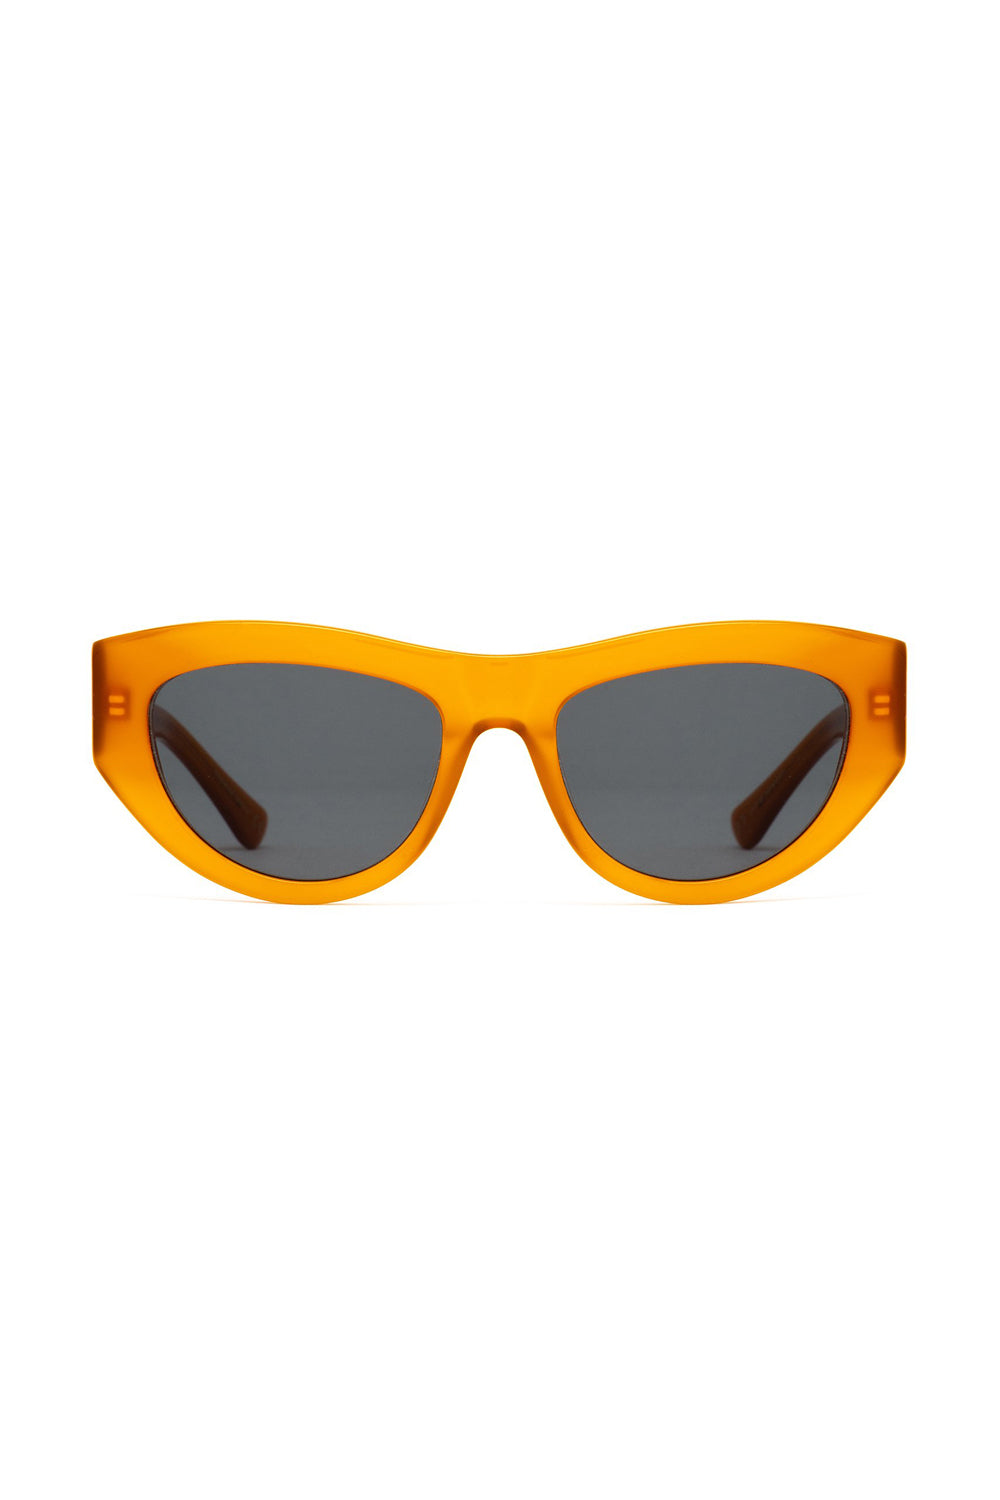 Epokhe Candy Sunglasses